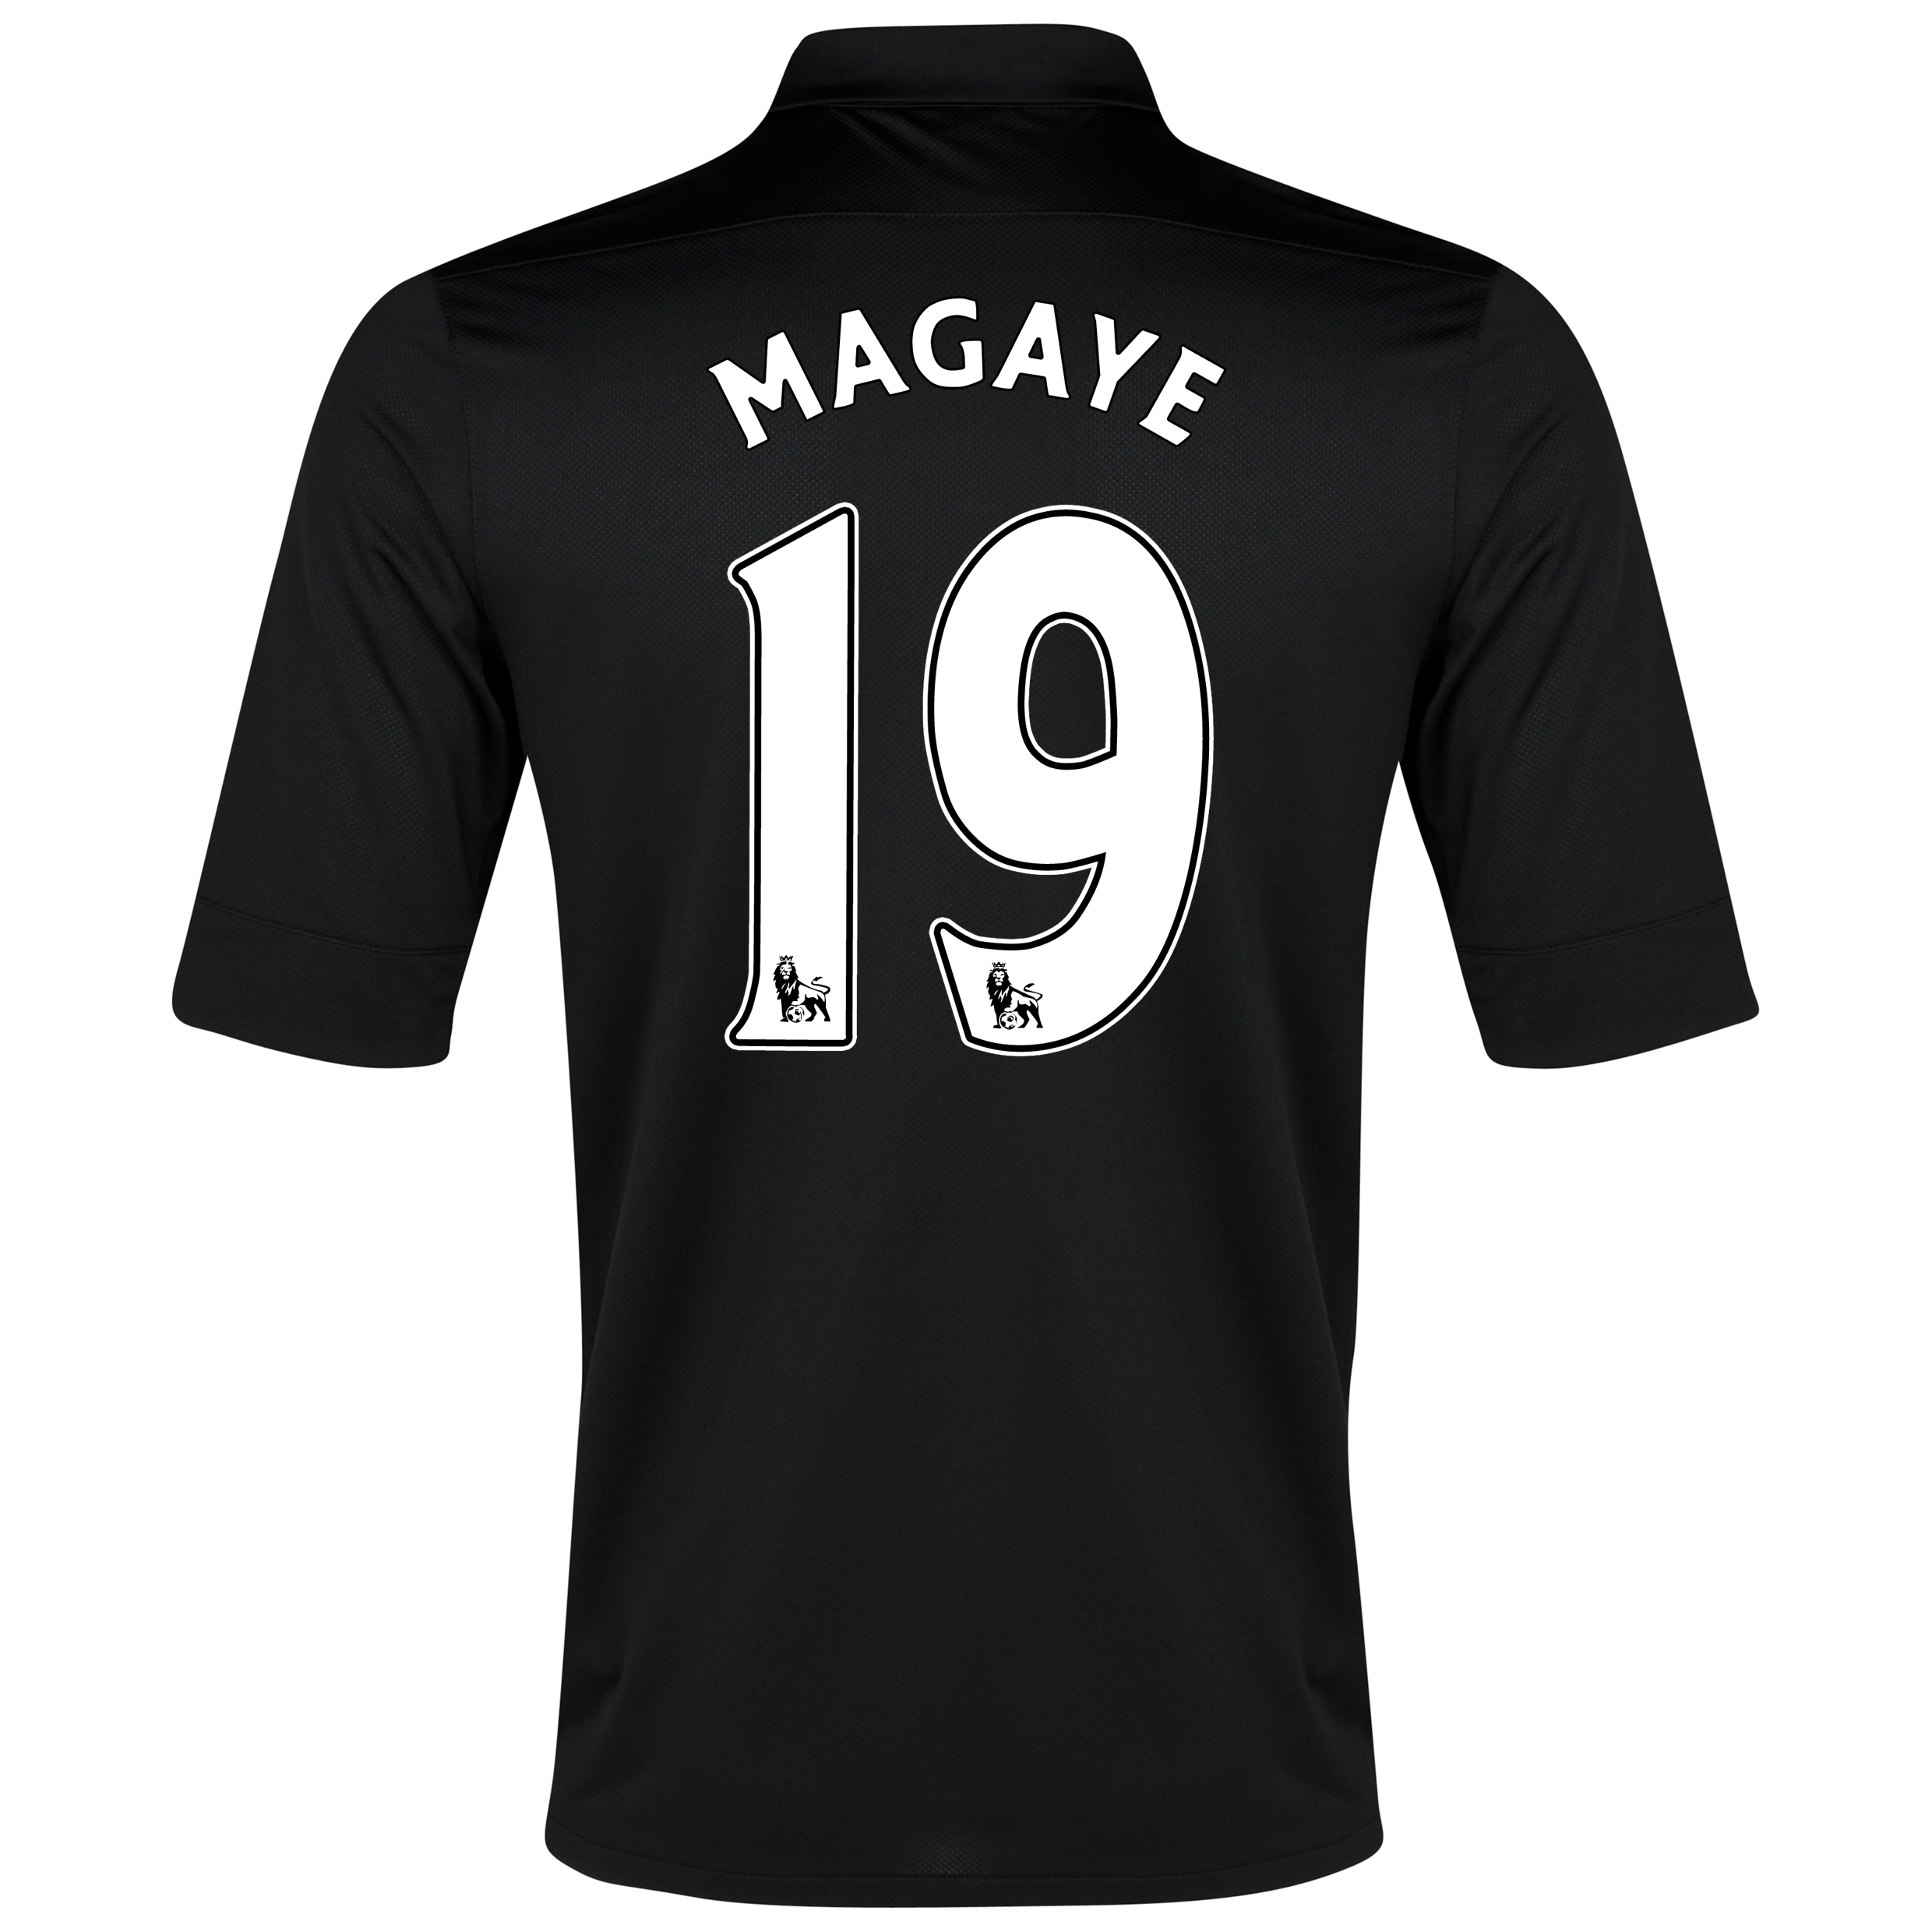 Everton Away Shirt 2012/13 with Magaye 19 printing